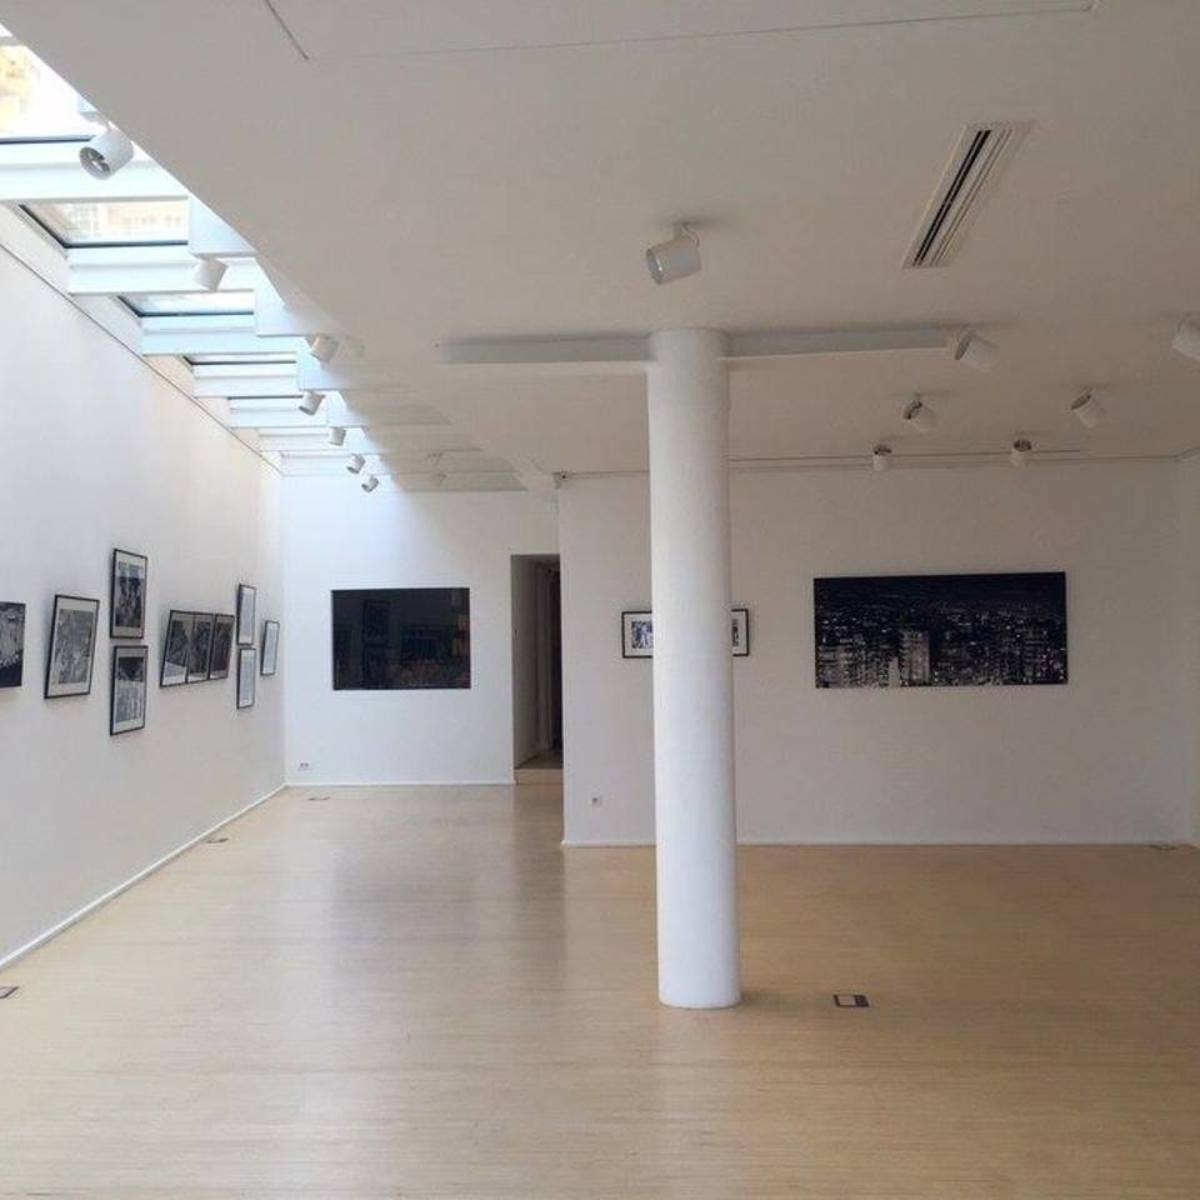 Disorders in Beirut exhibition | Livegreenblog